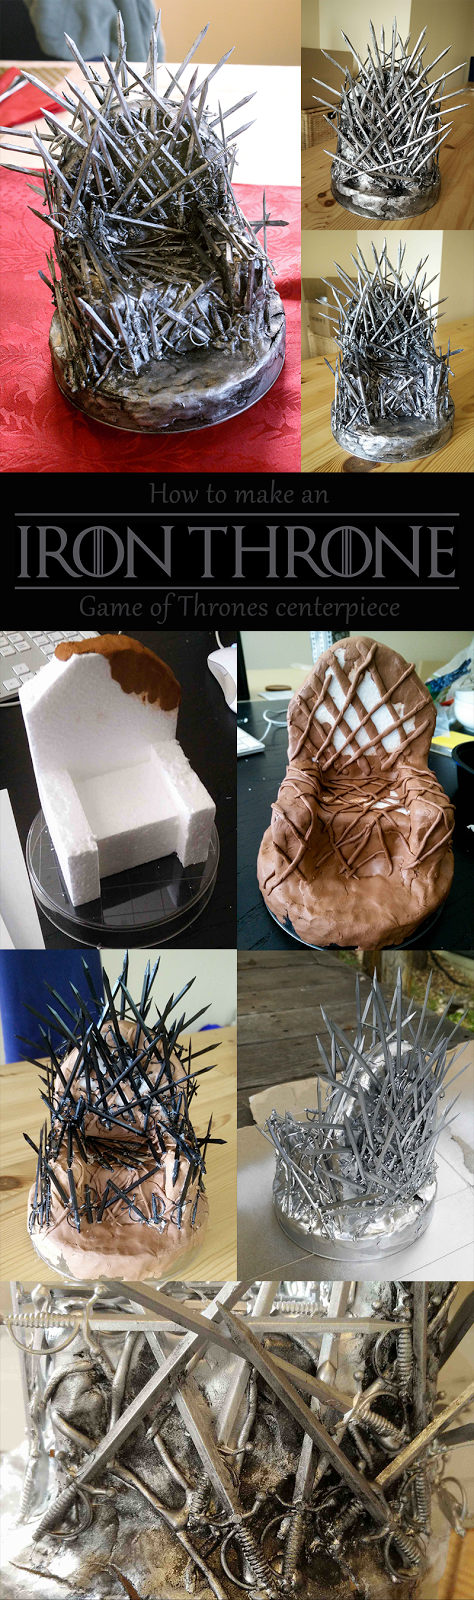 step-by-step instructions for crafting your own iron throne from cocktail swords